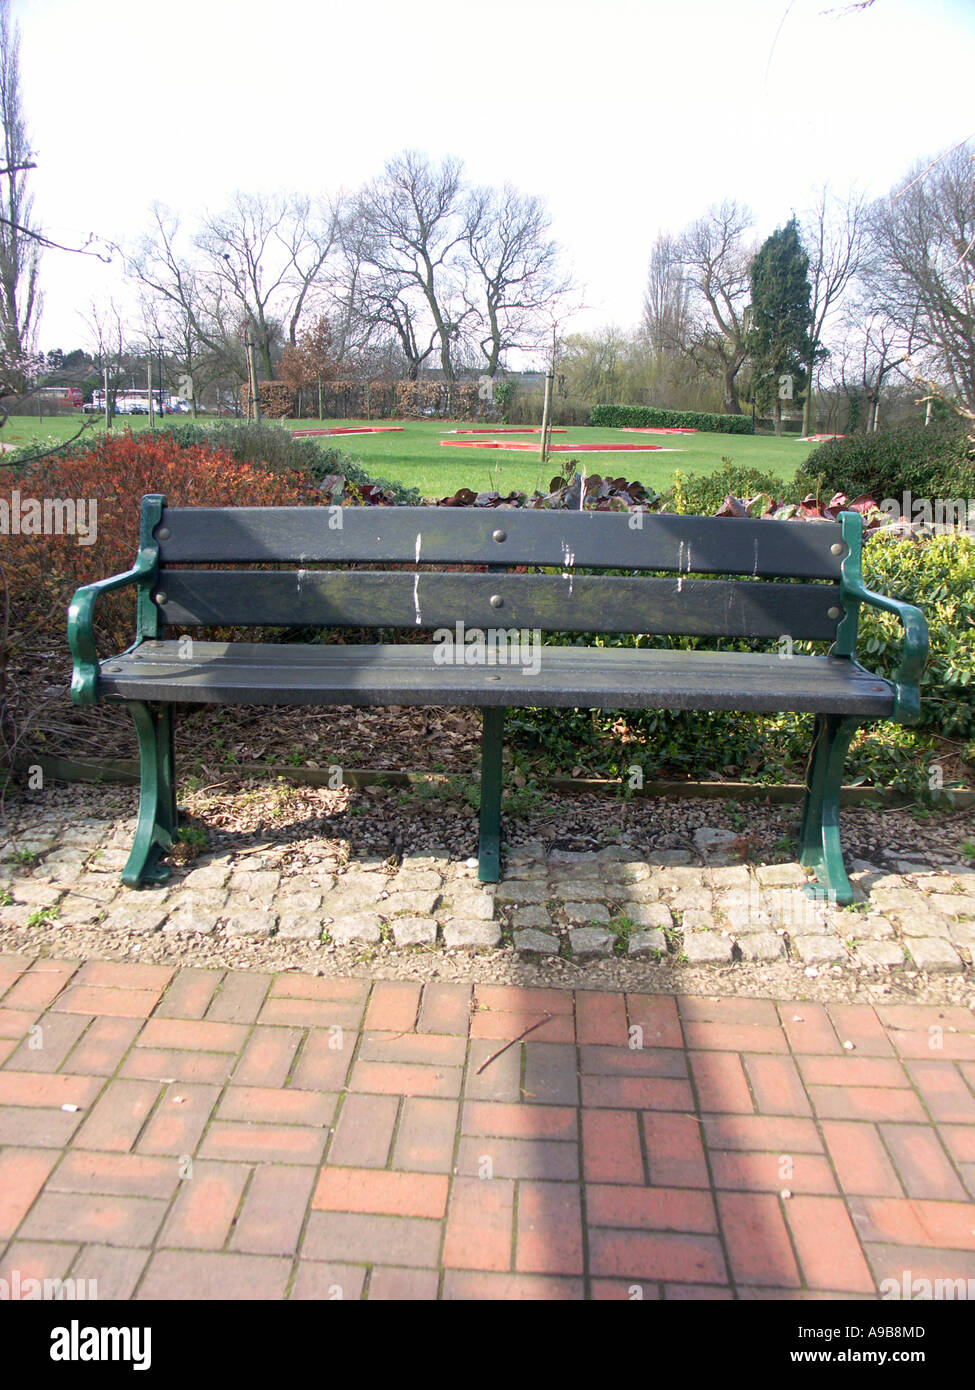 Picture of: Park Bench With Seating Slats Made From Recycled Plastic Waste Stock Photo Alamy